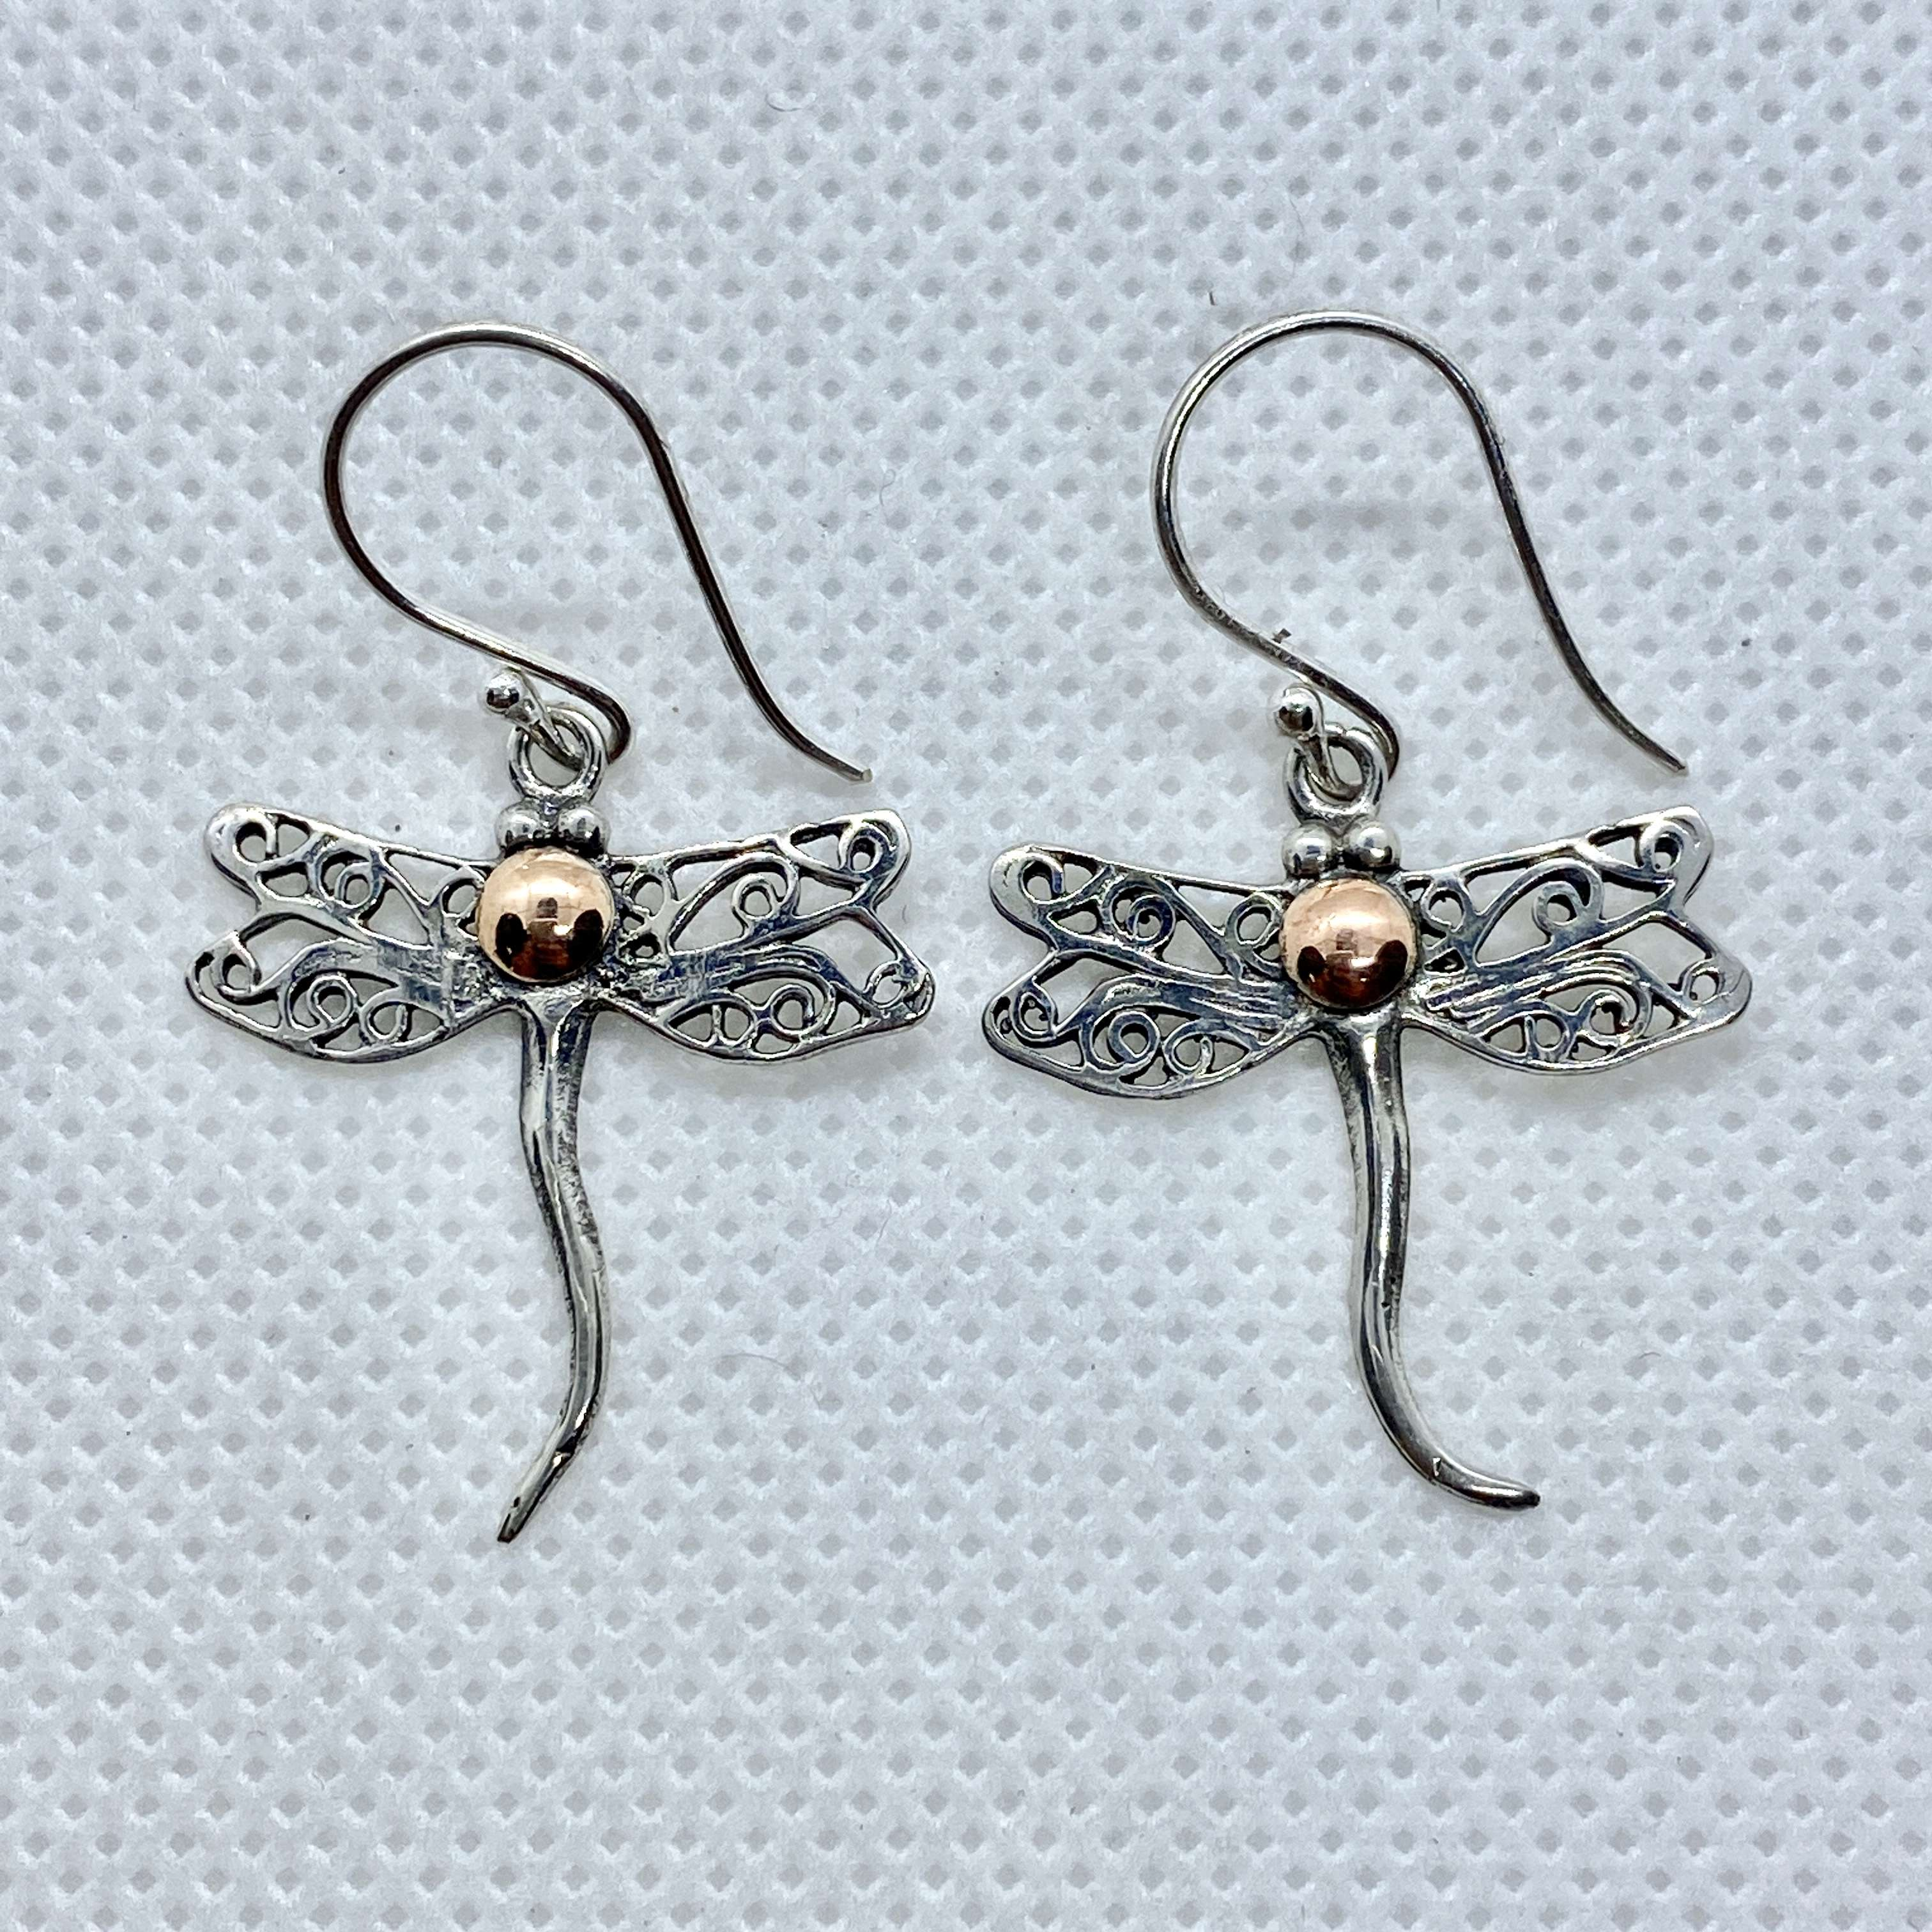 (UNIQUE 925 BALI SILVER DRAGONFLY EARRINGS WITH 18 KT GOLD ACCENT)